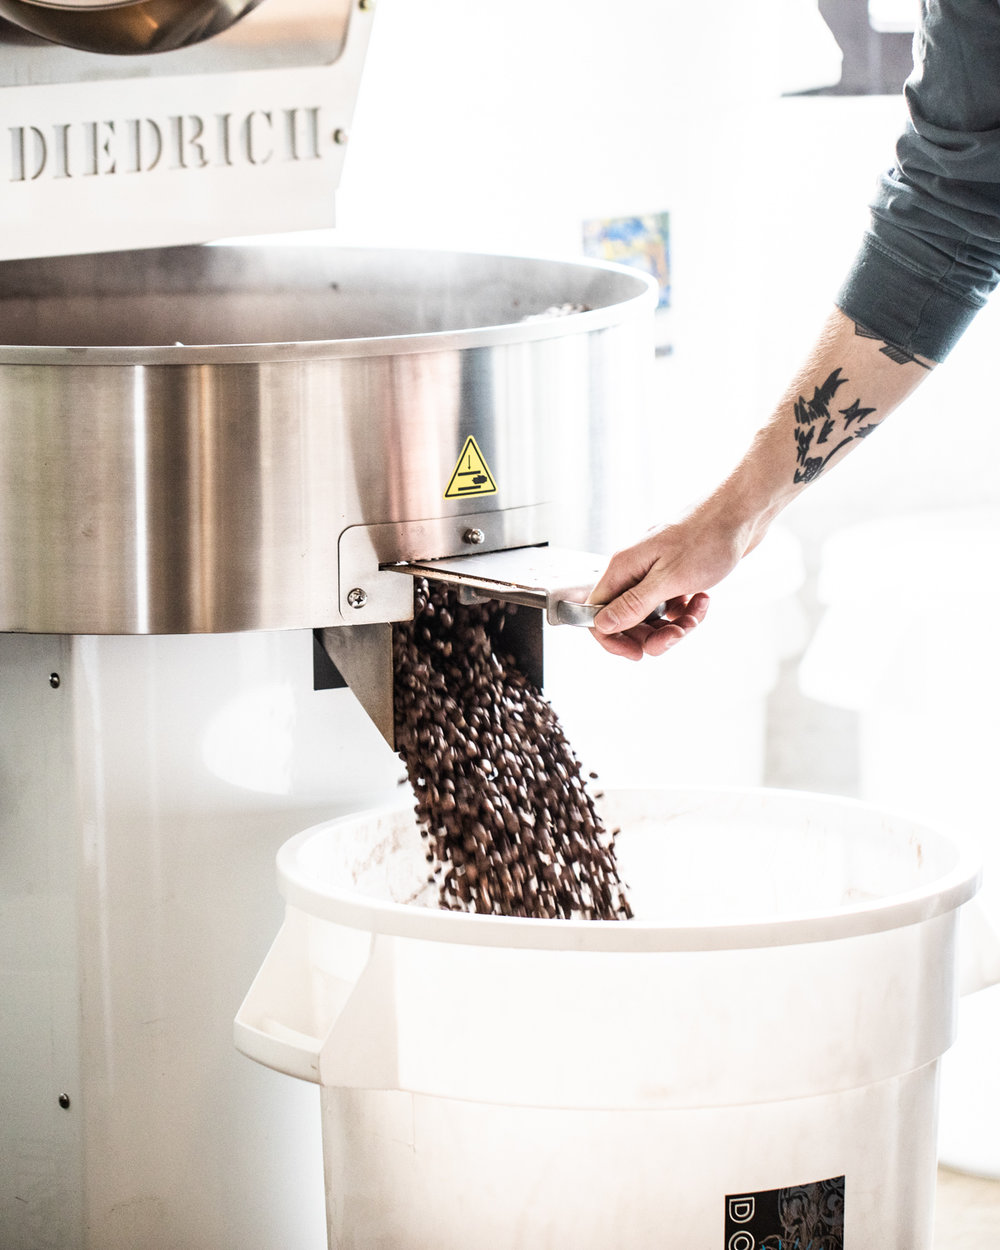 Final step before mixing the beans and packaging—collecting the cooled beans.